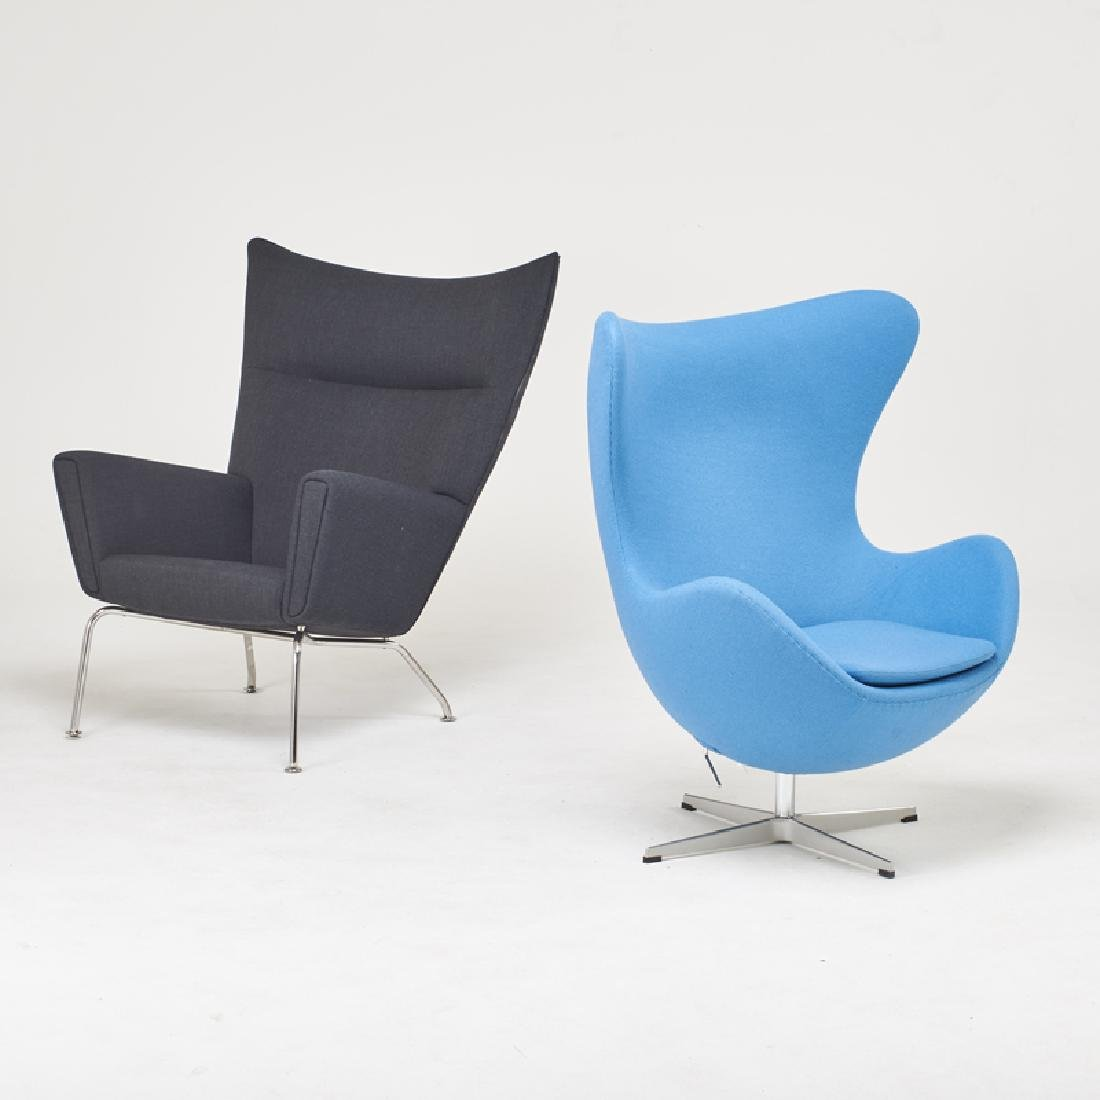 STYLE OF ARNE JACOBSEN, ETC.